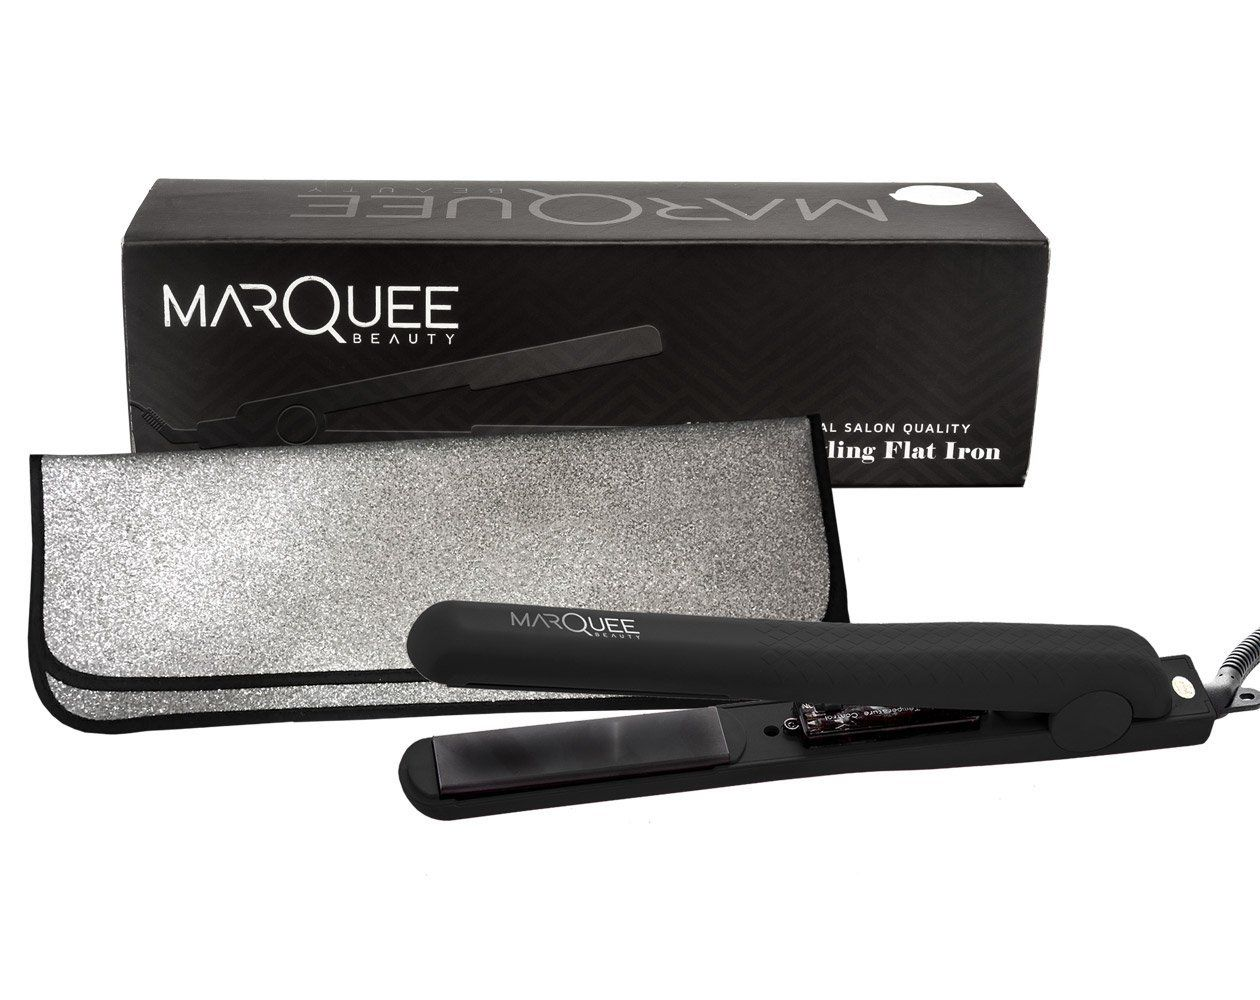 Marquee Professional Ceramic Flat Iron Hair Straightener With Thermal Travel Pouch Professi Hair Straighteners Flat Irons Ceramic Flat Iron Hair Straightener